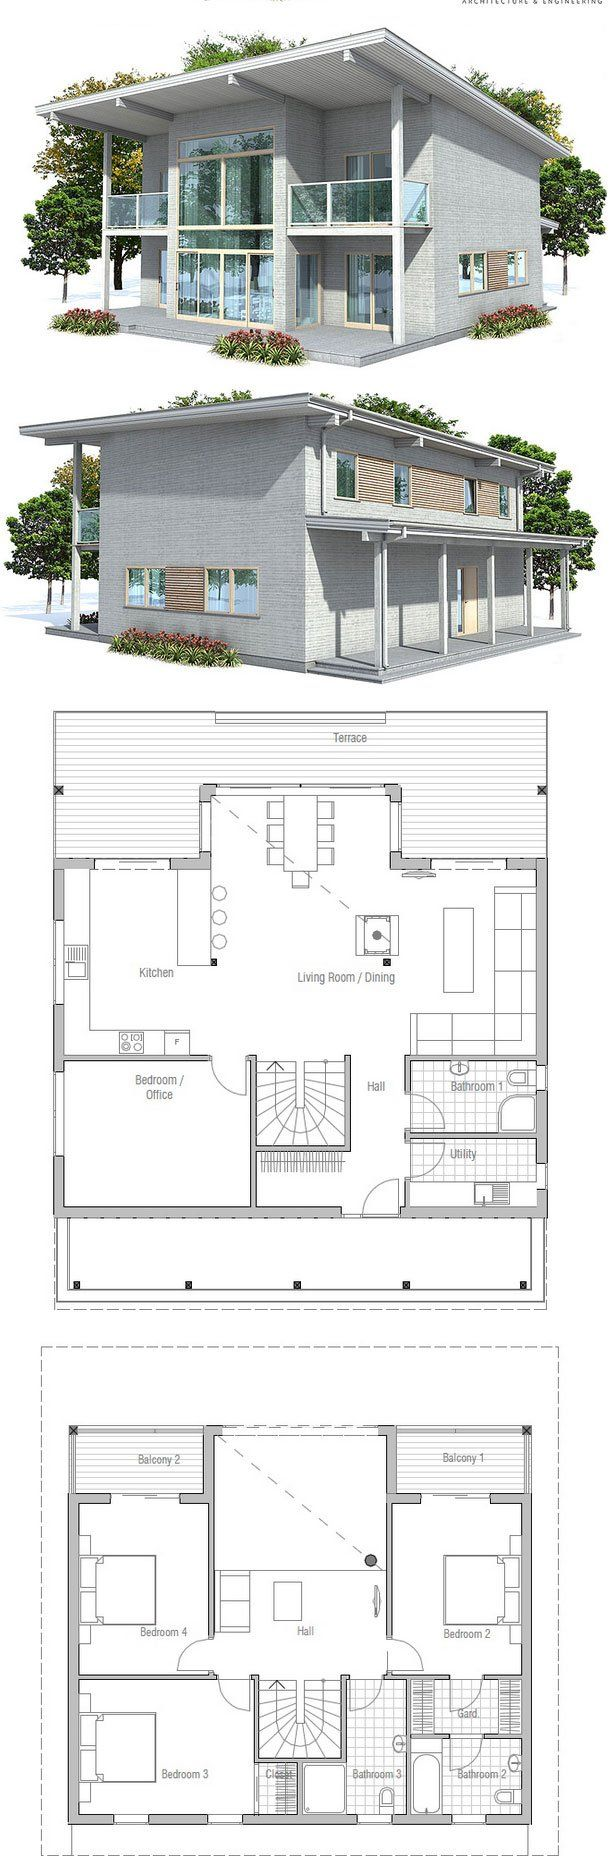 Small house plan with small building area